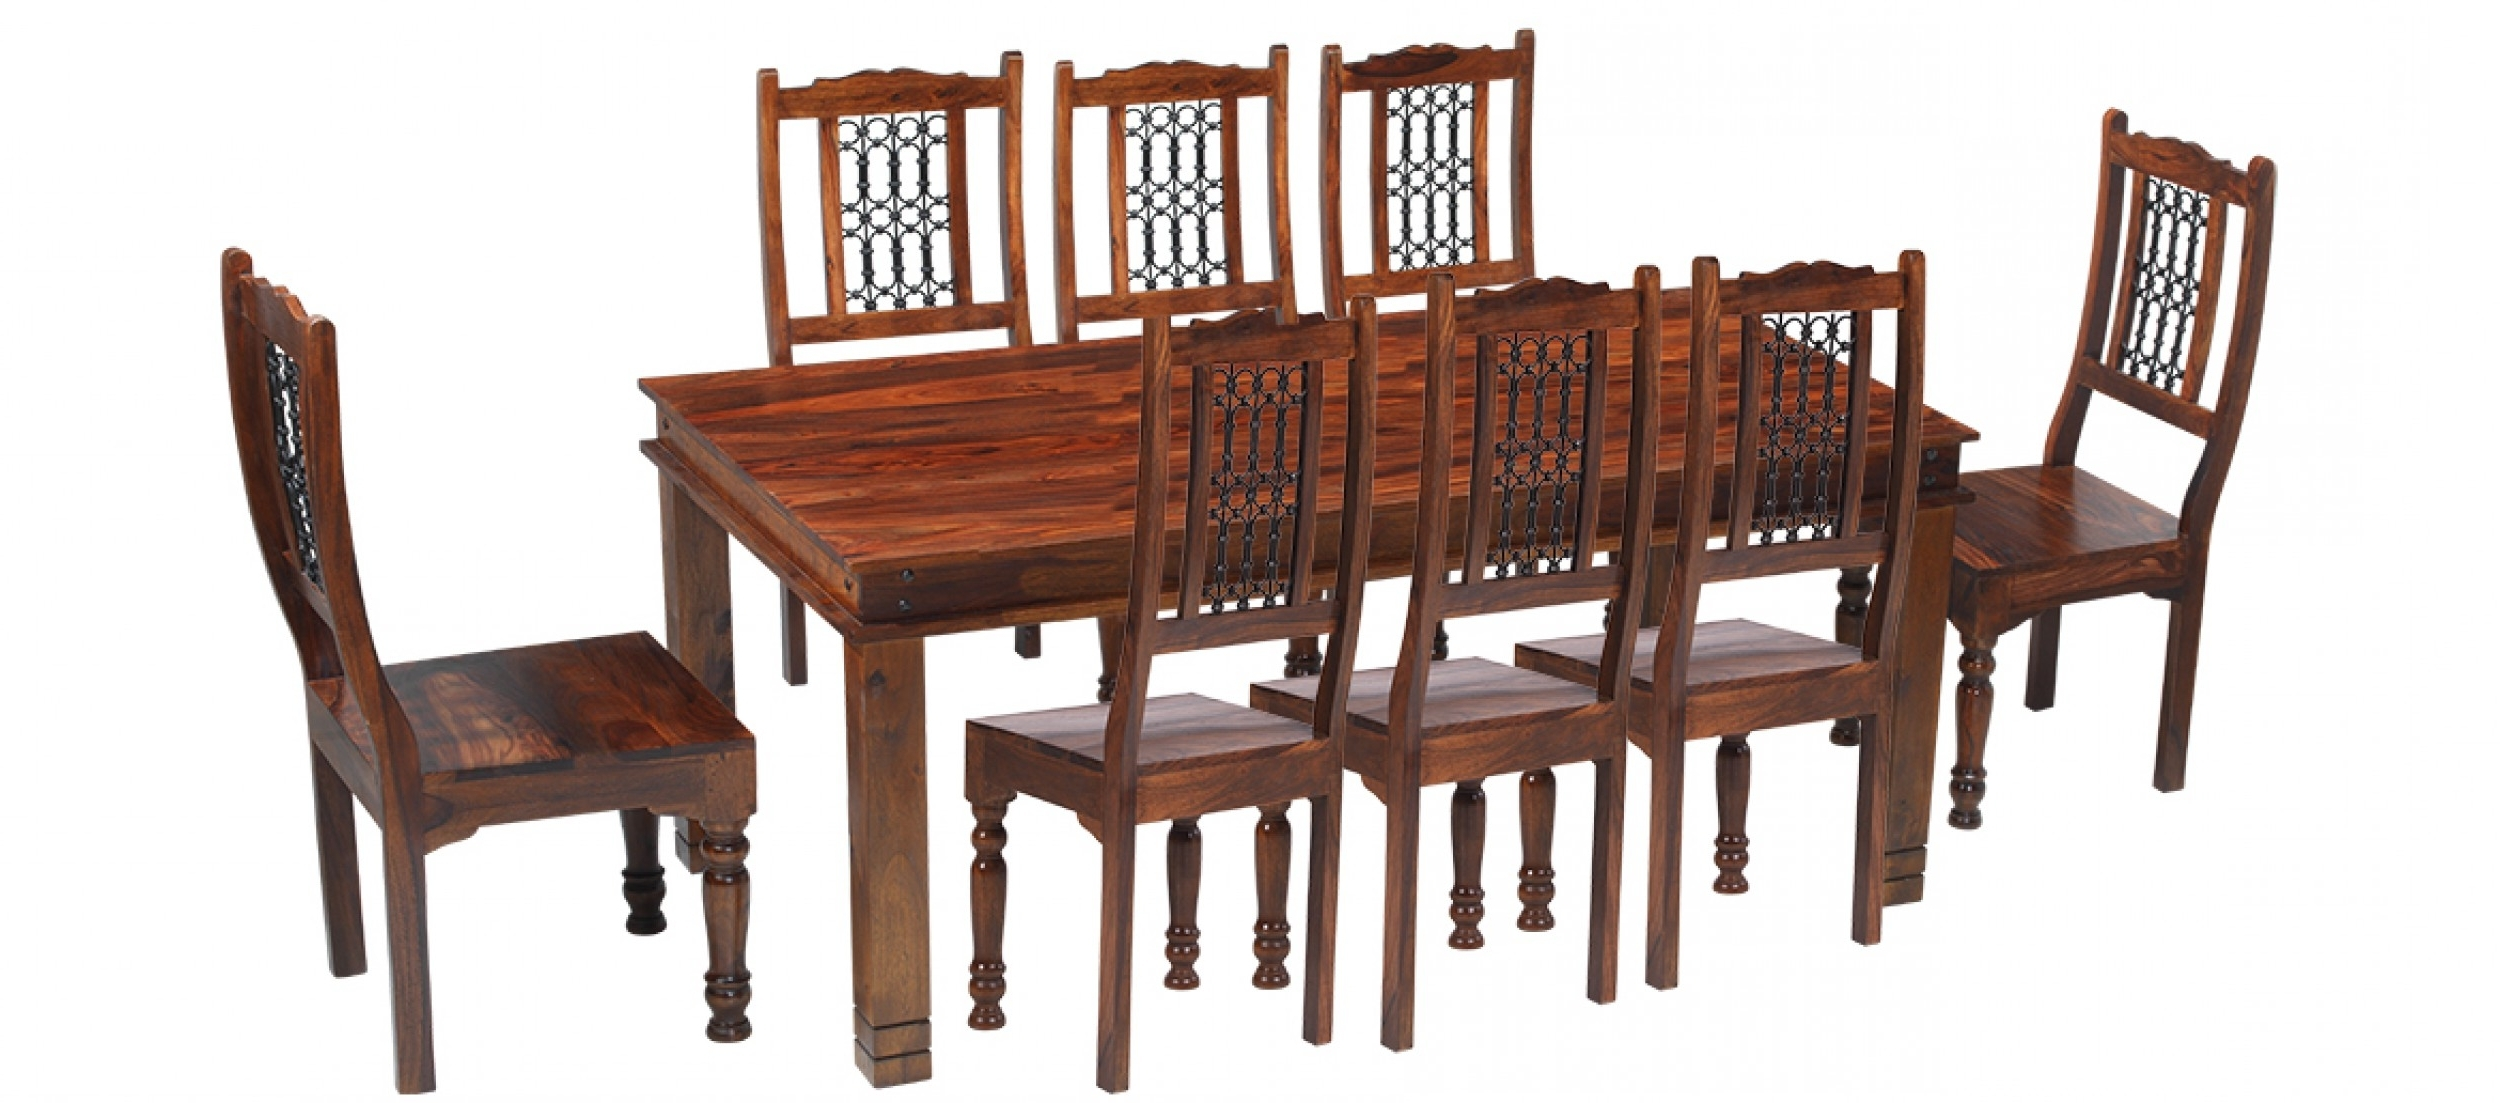 Jali Sheesham 200 Cm Chunky Dining Table And 8 Chairs Quercus Living Intended For Favorite Dining Tables With 8 Chairs (View 19 of 25)